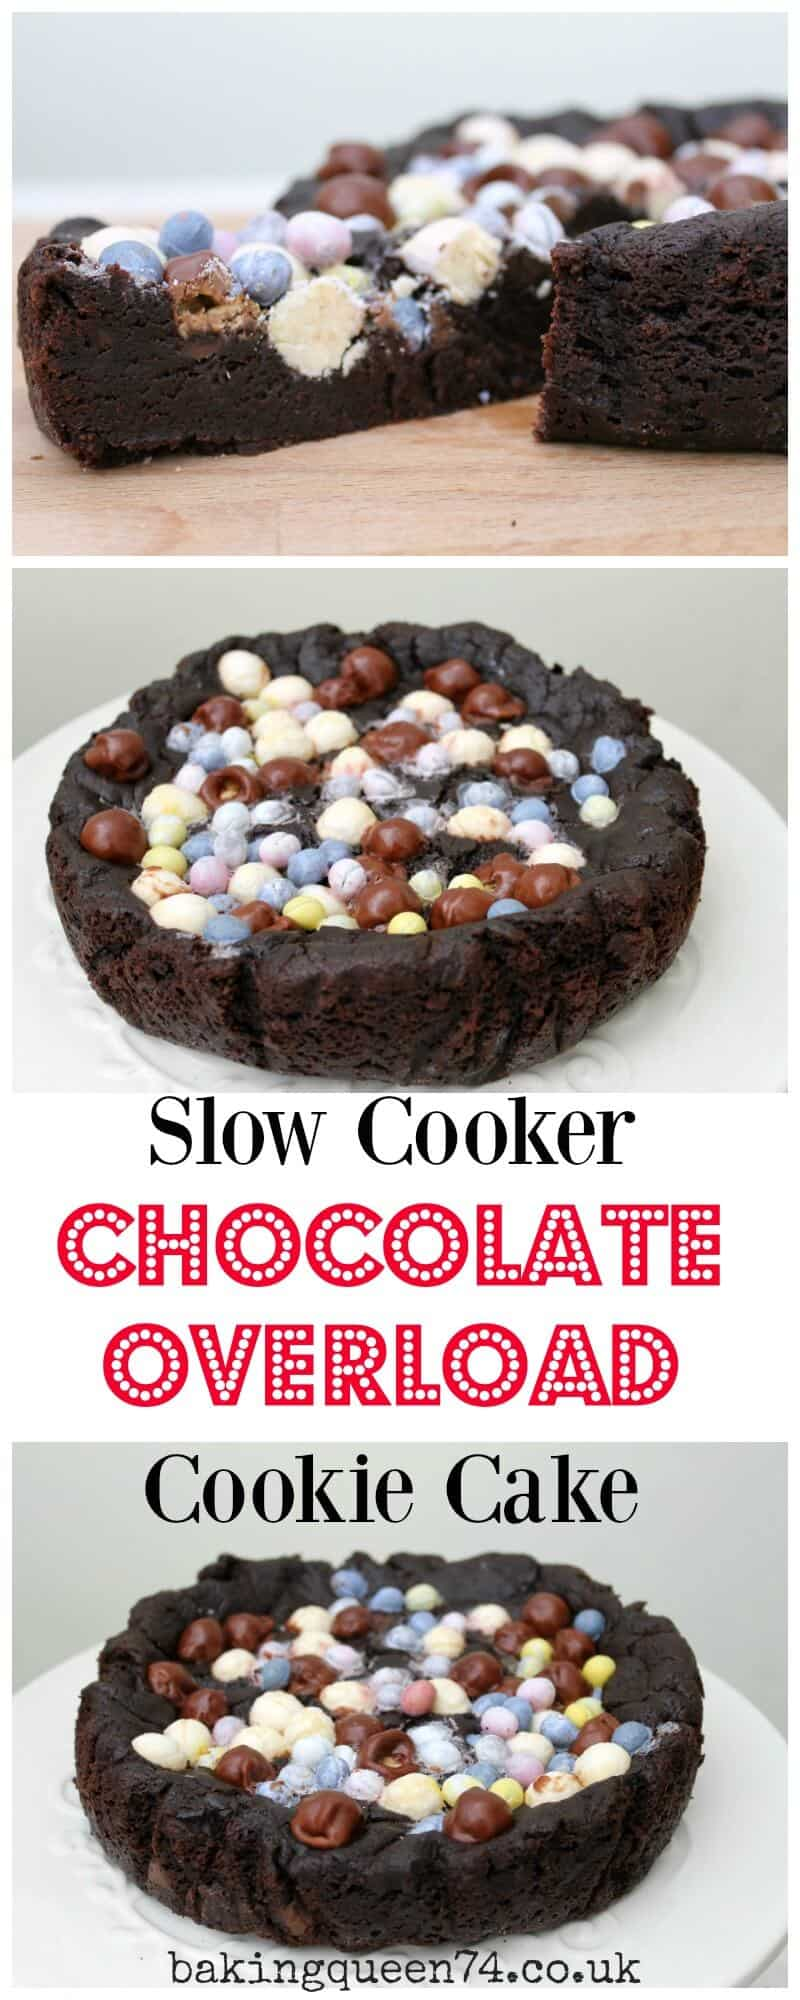 Slow Cooker Chocolate Overload Cookie Cake - BakingQueen74